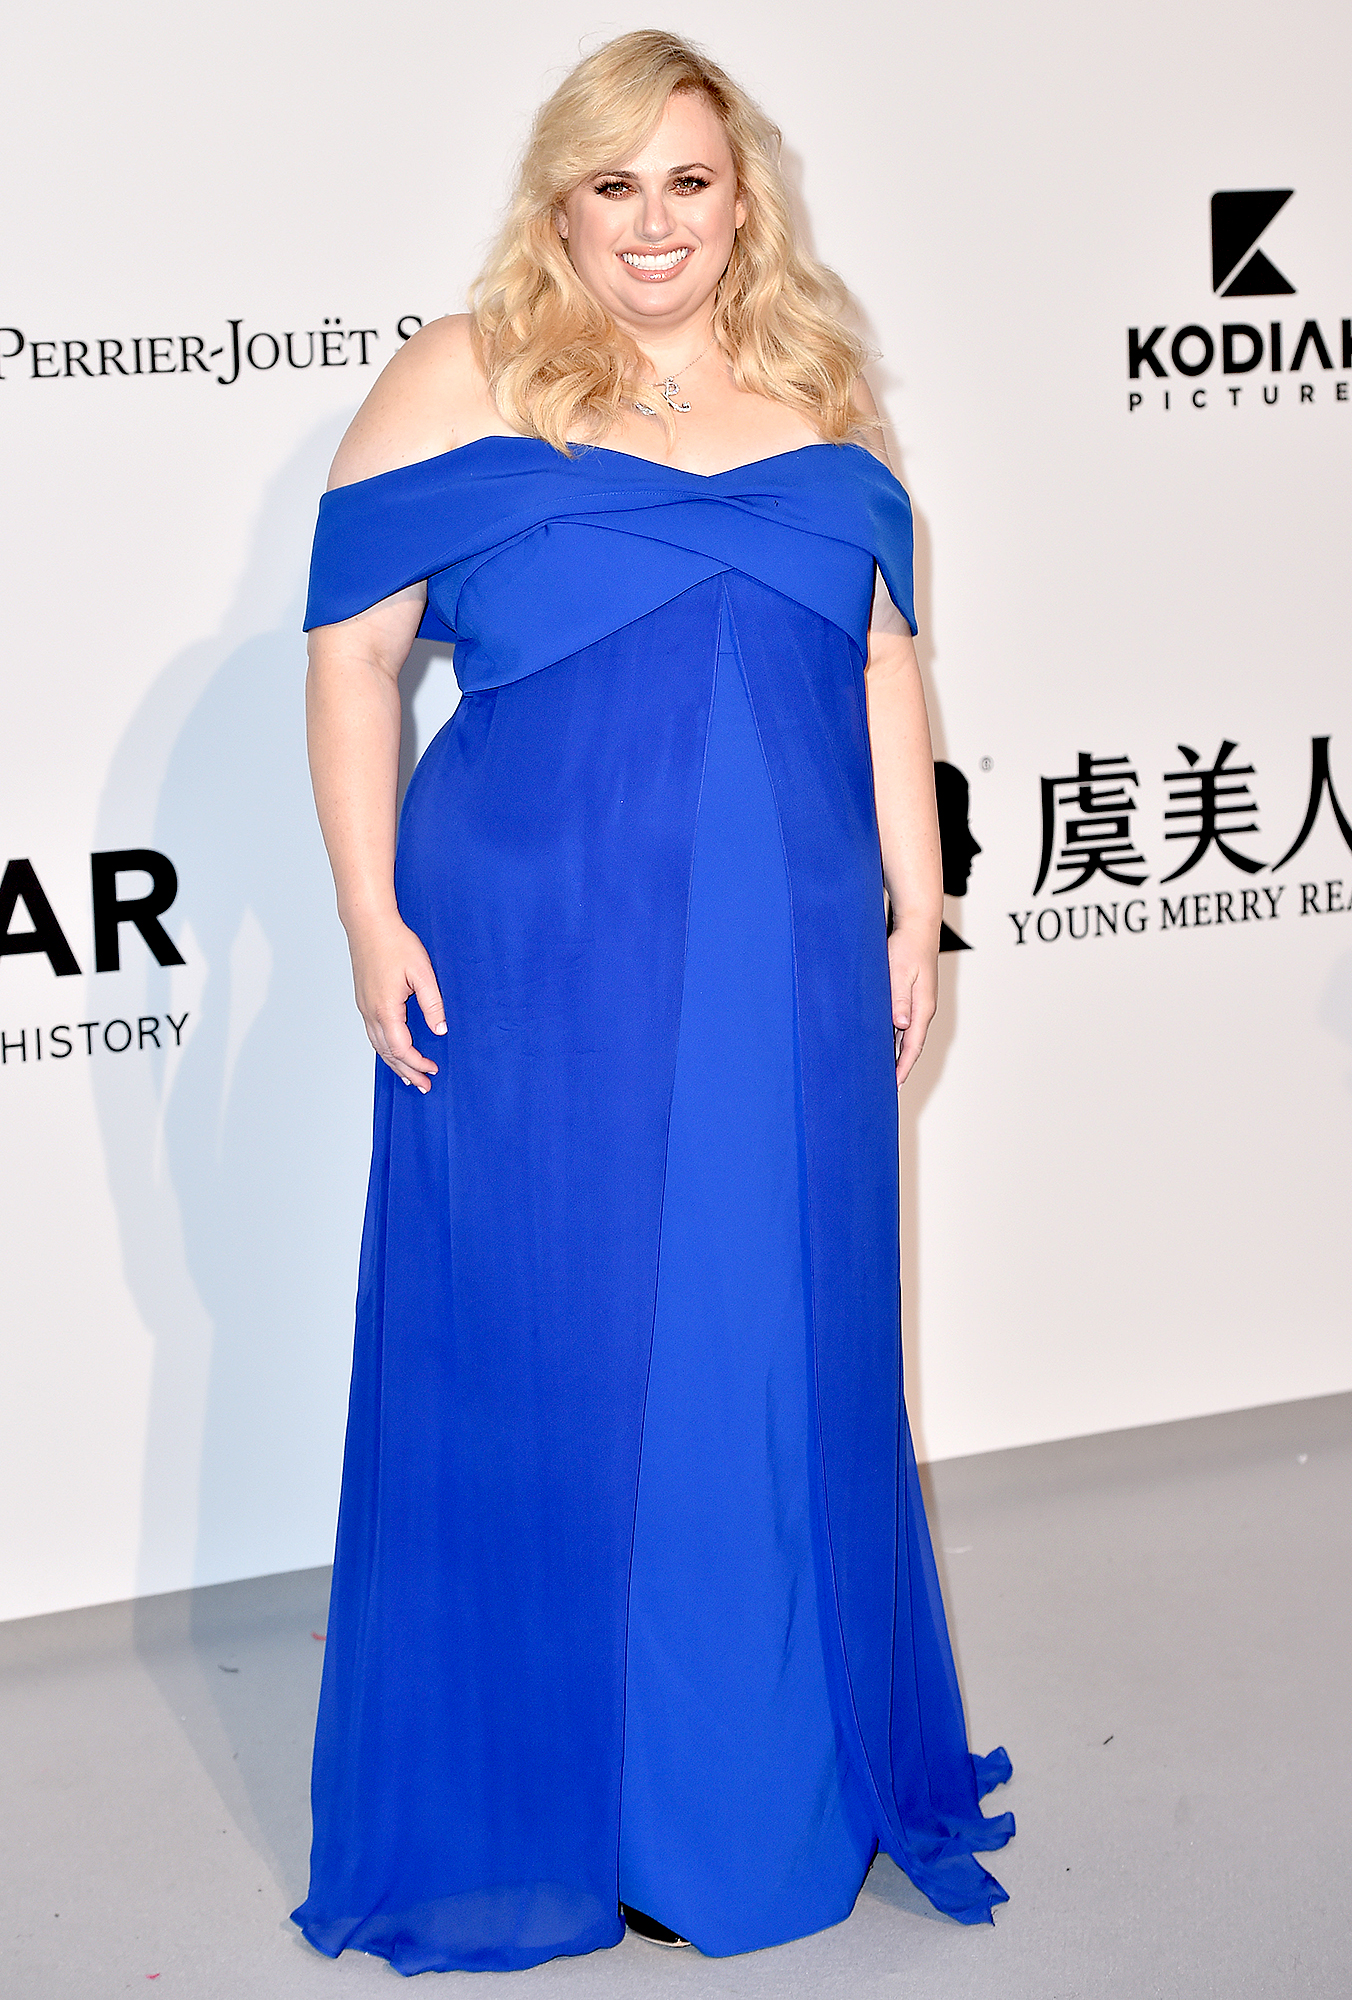 Rebel-Wilson - At the amfAR Cannes Gala on Thursday, May 23, the comedian opted for an off-the-shoulder blue Sachin & Babi gown.